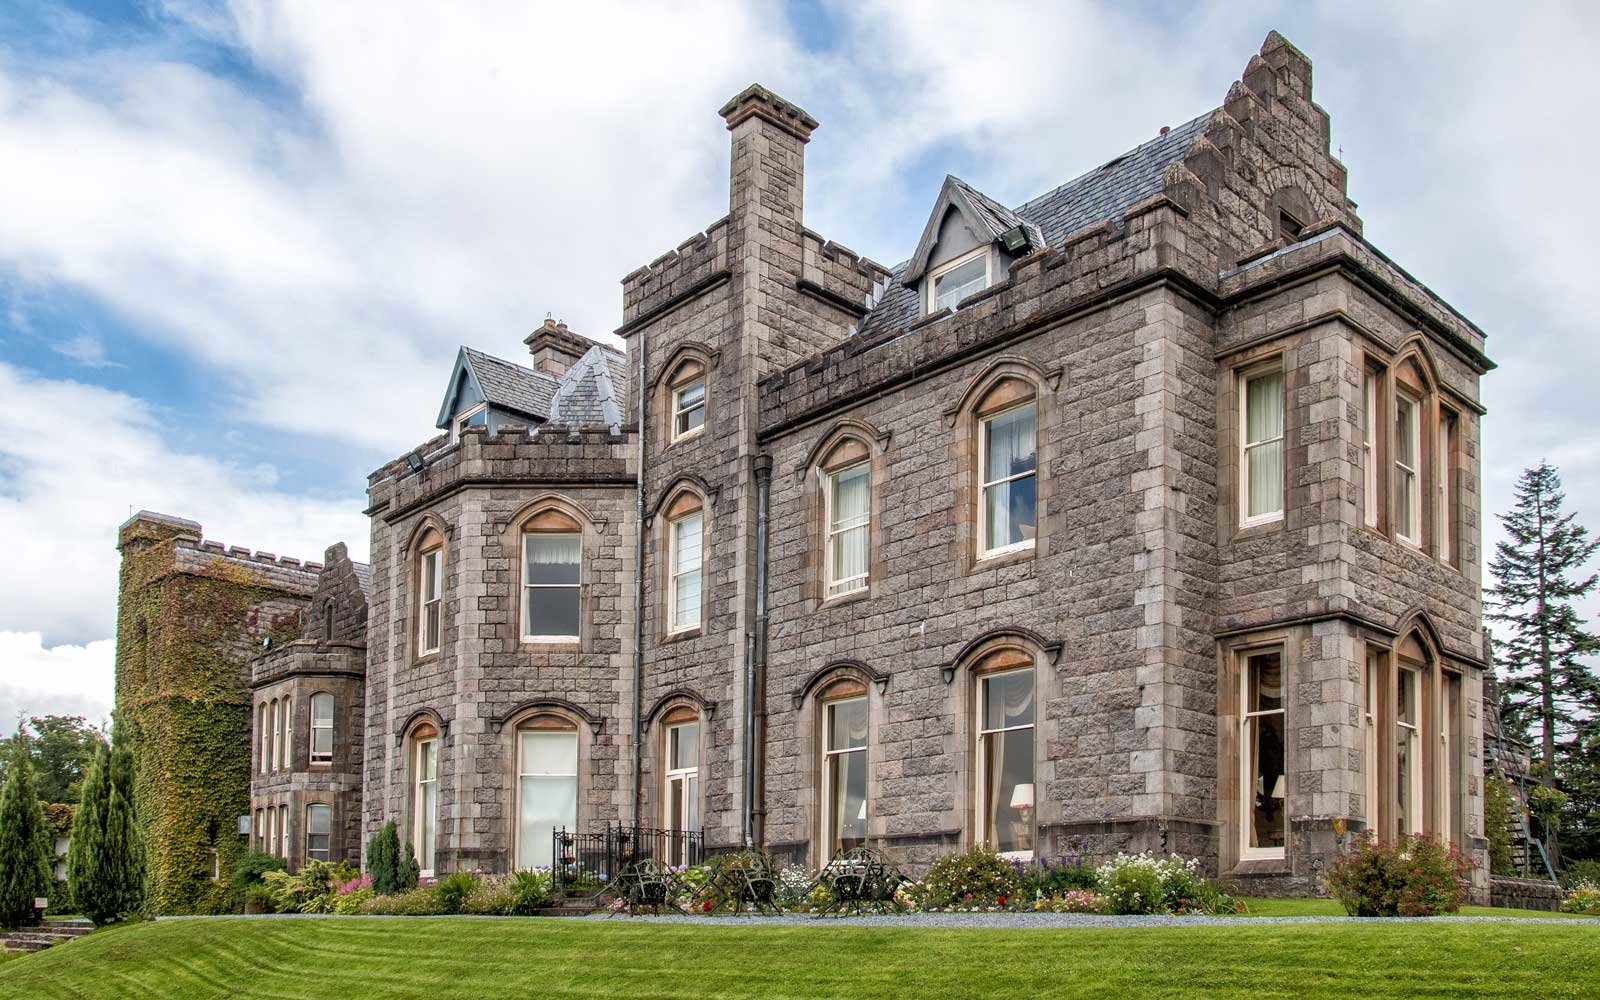 Exterior of Inverlochy Castle